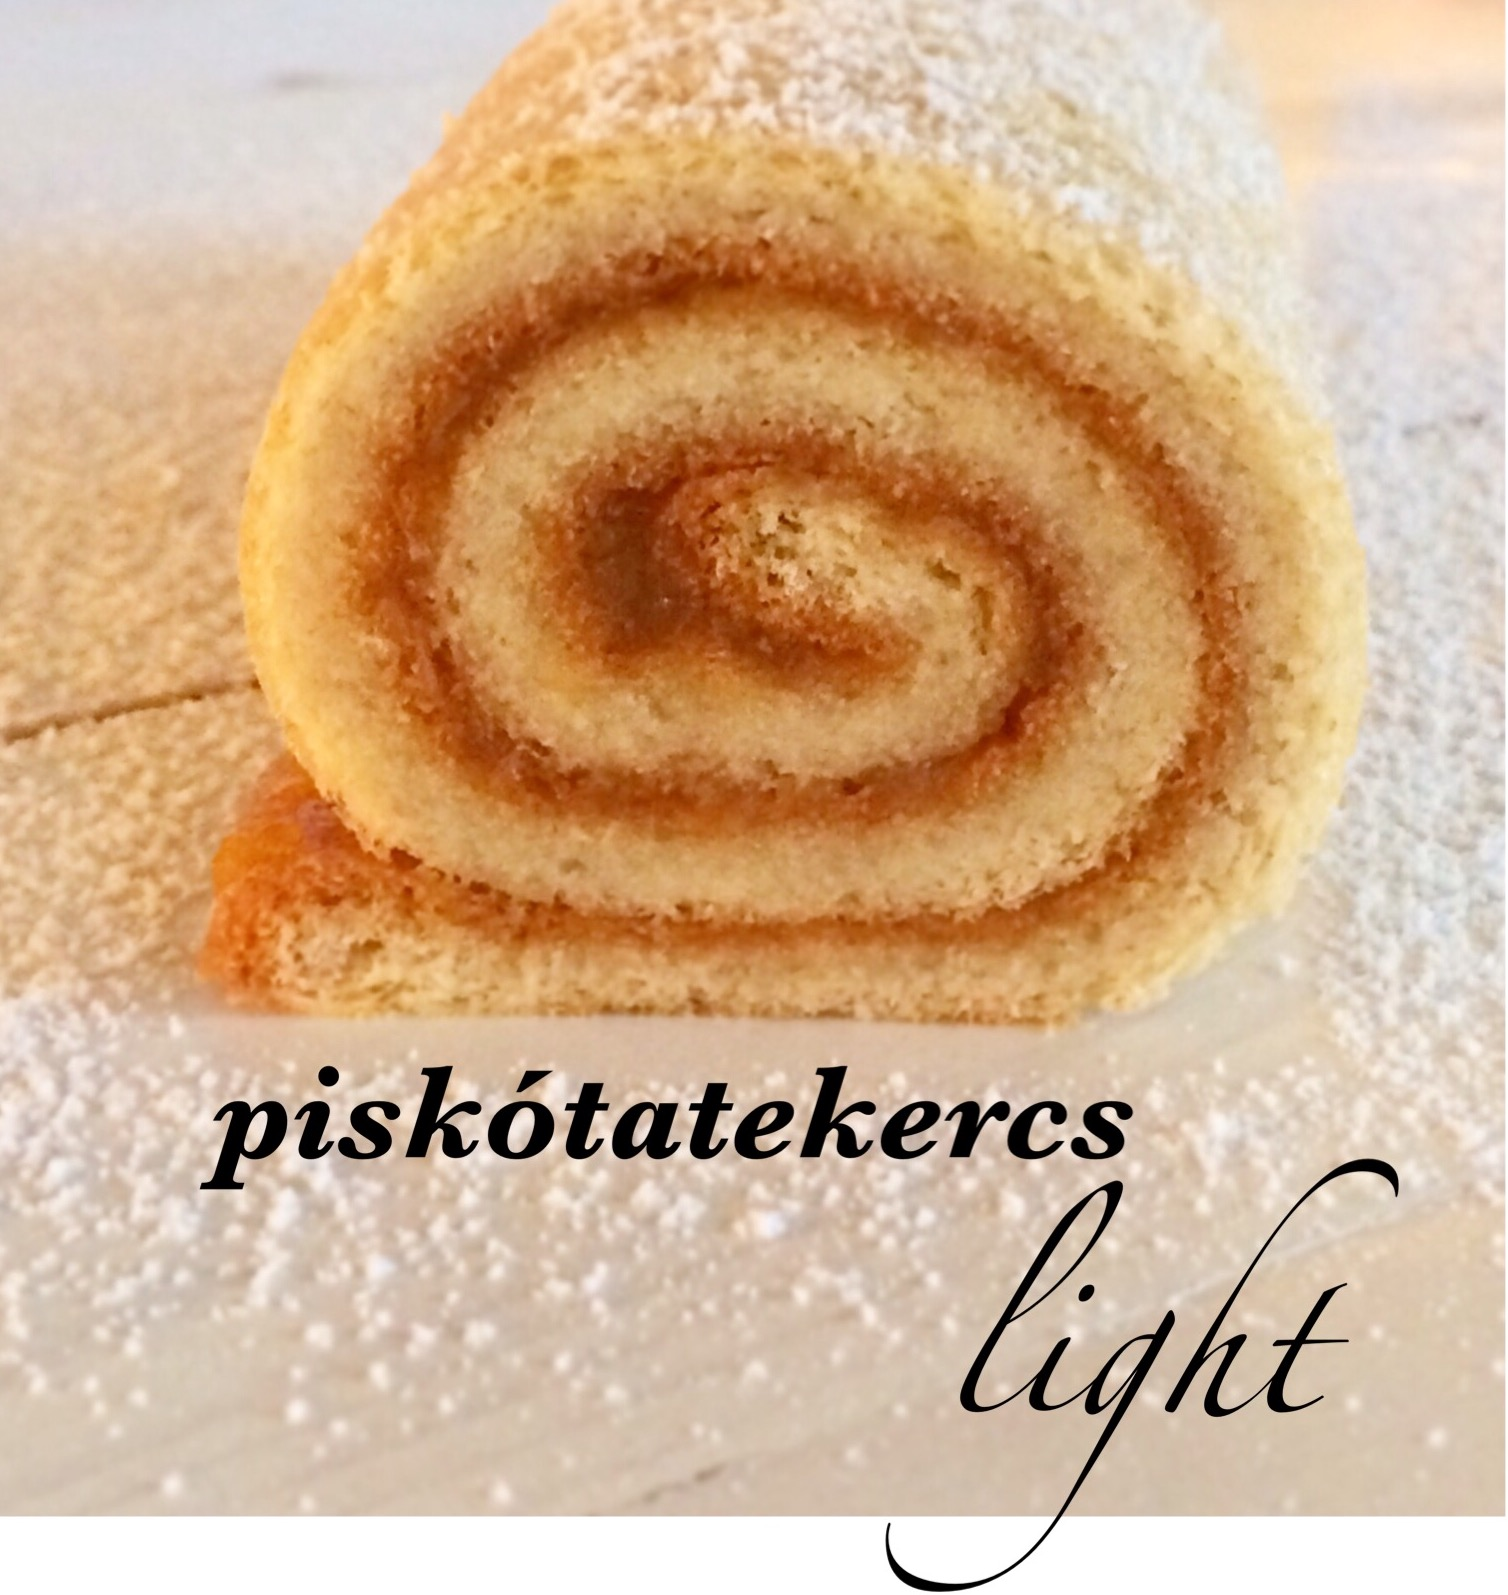 Piskótatekercs light